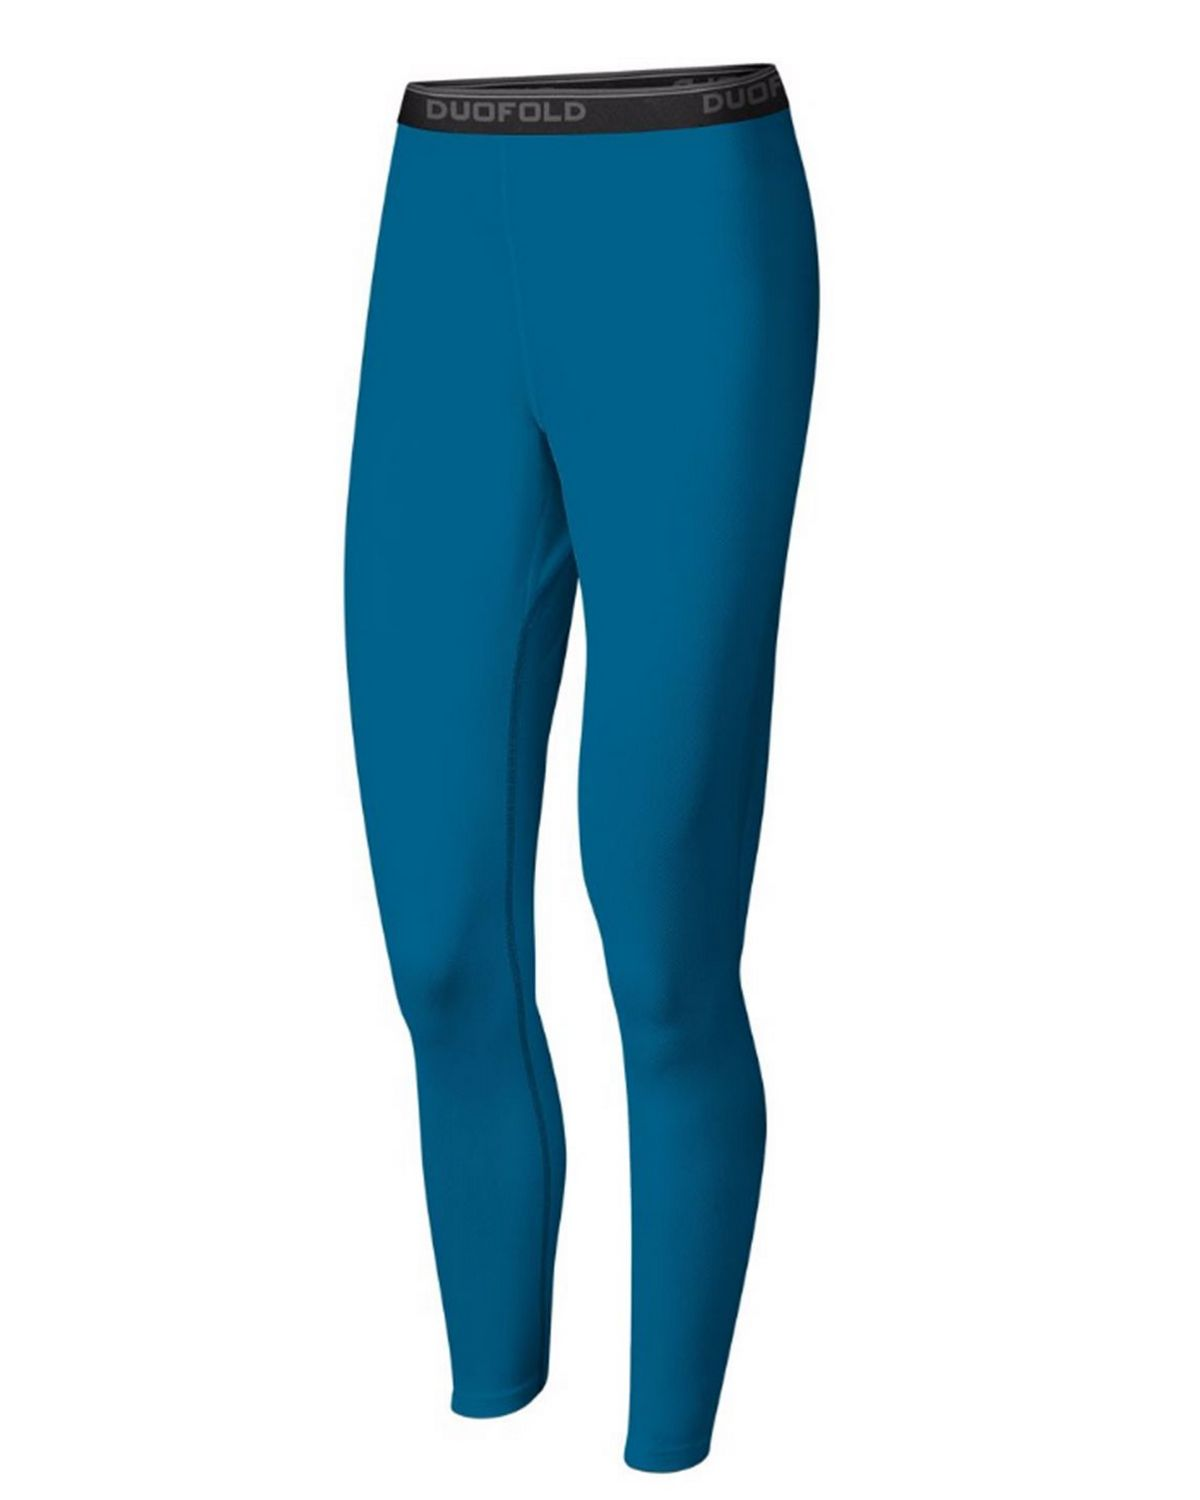 Duofold KDC4 Womens Ankle Length Pant - Underwater Blue - S KDC4